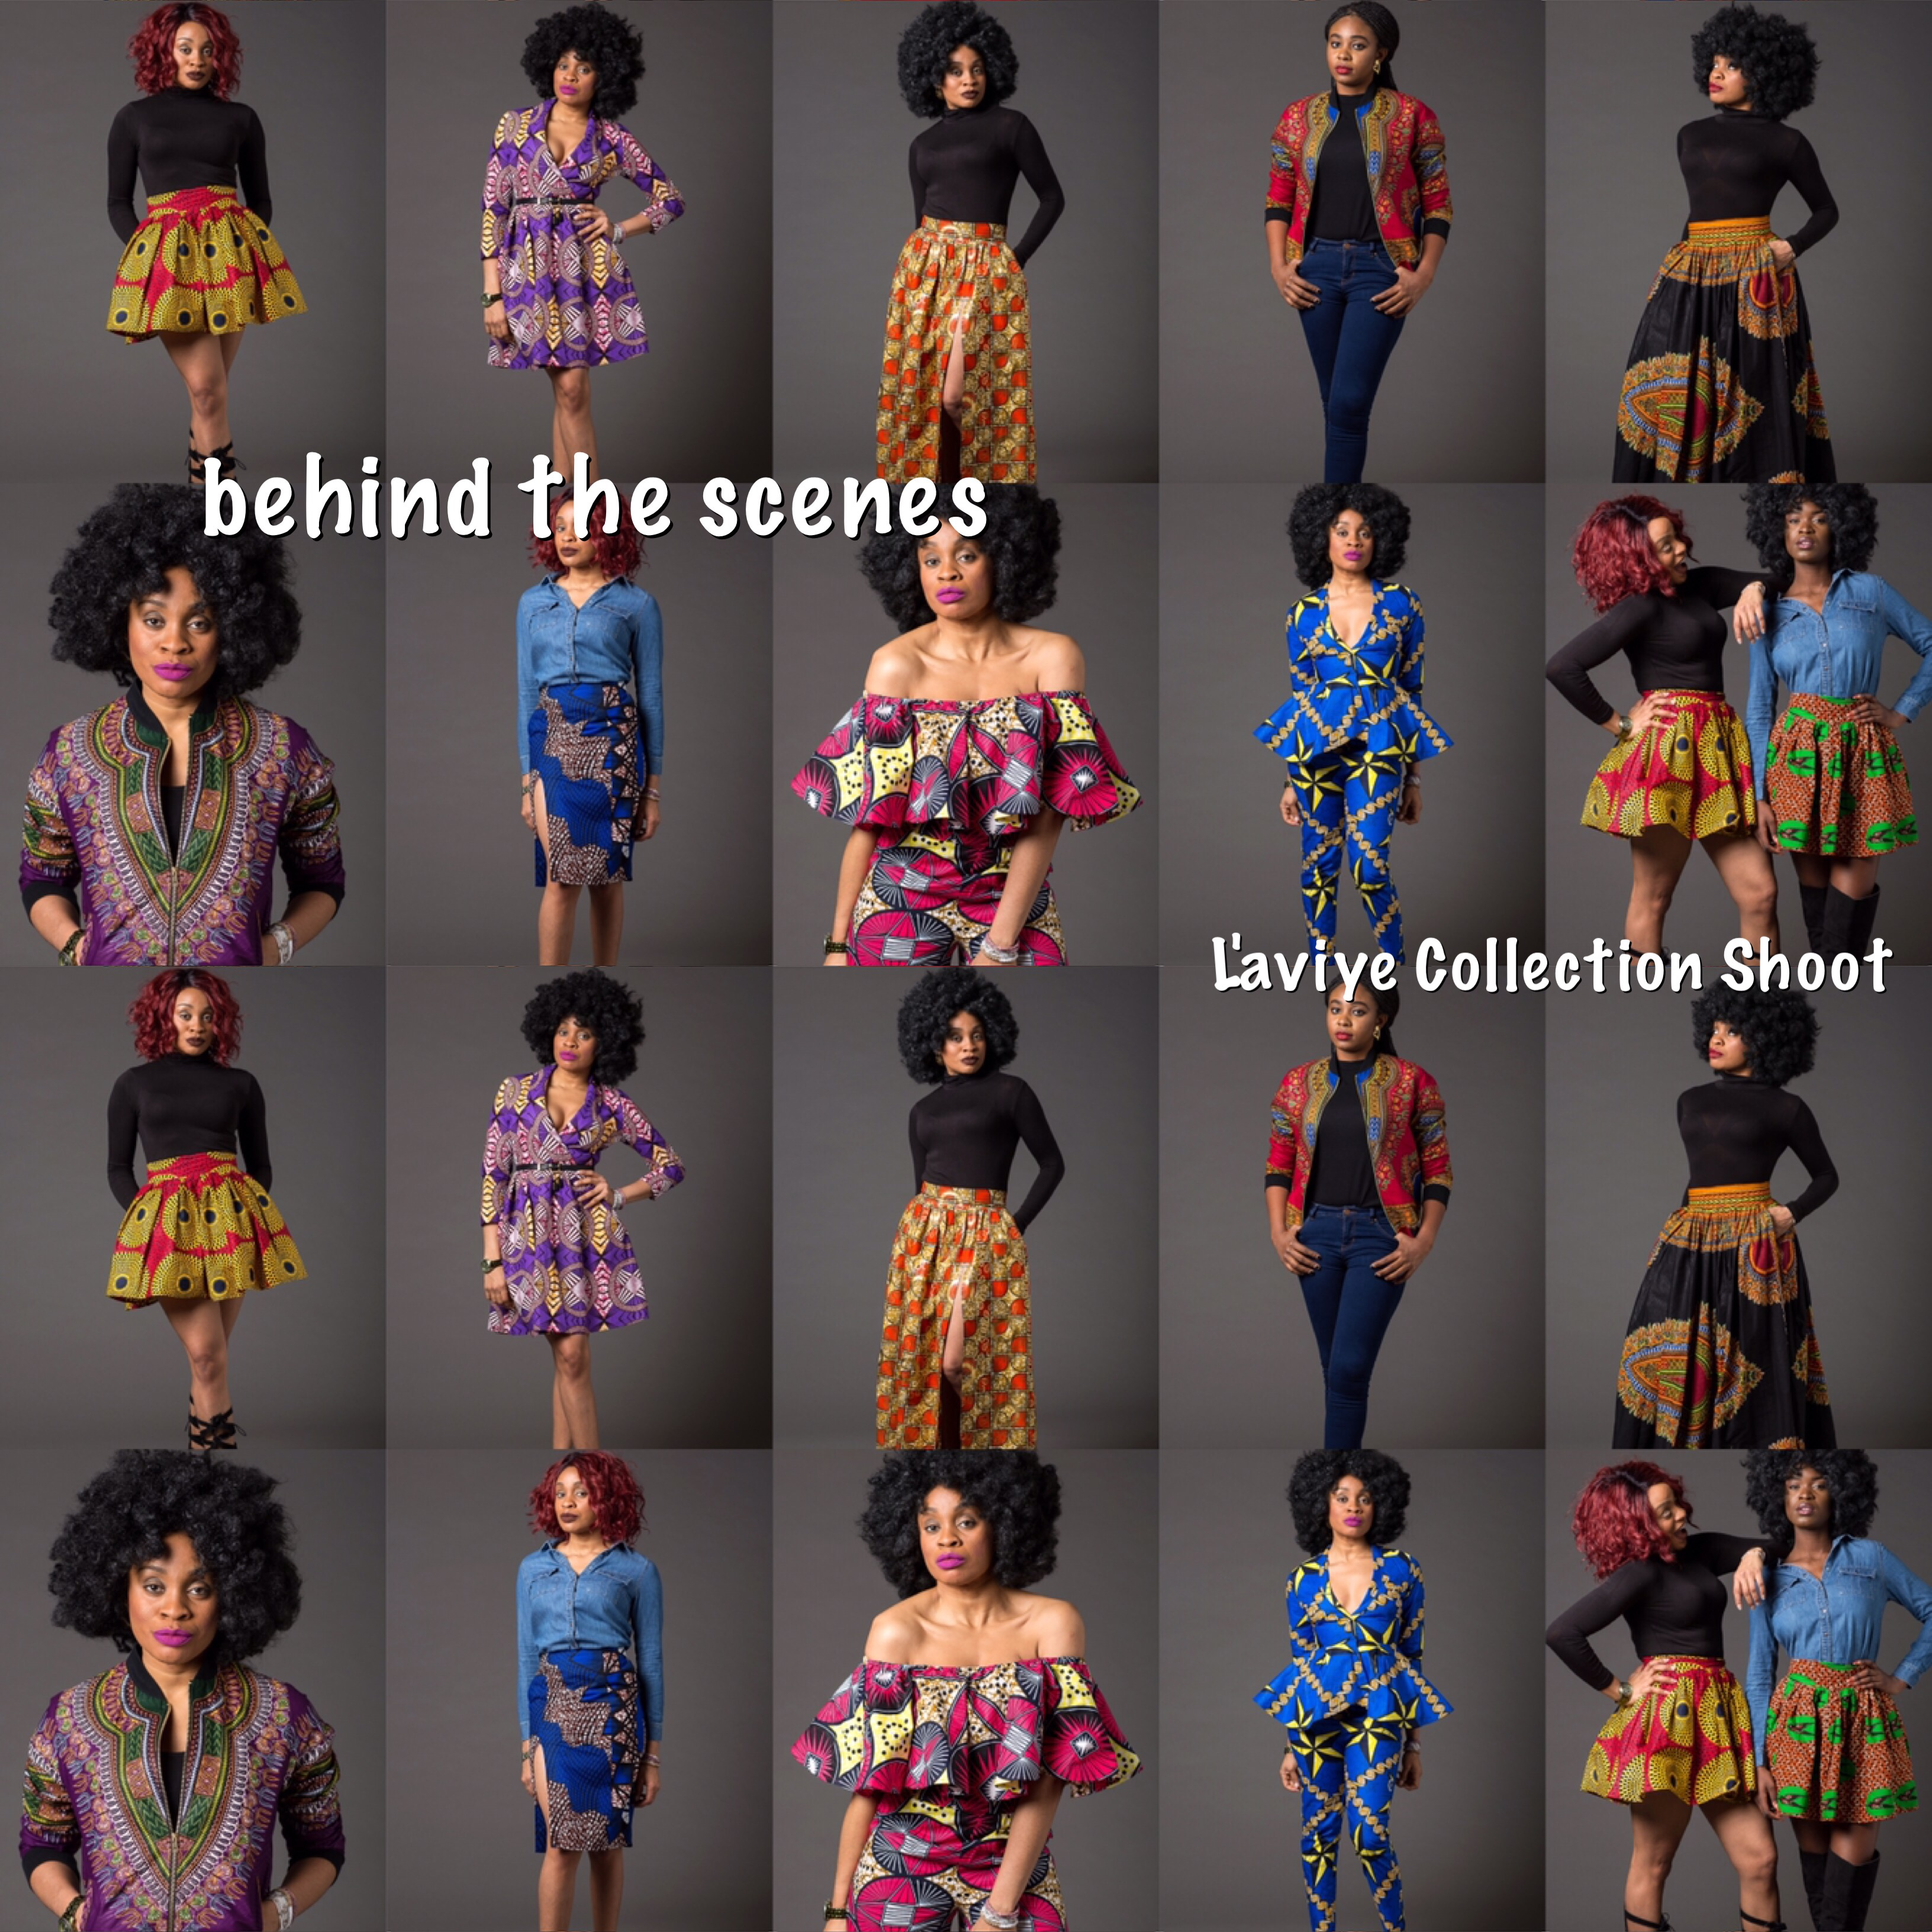 The L'aviye Collection Shoot - #behindTheScenes Video #collectionShots